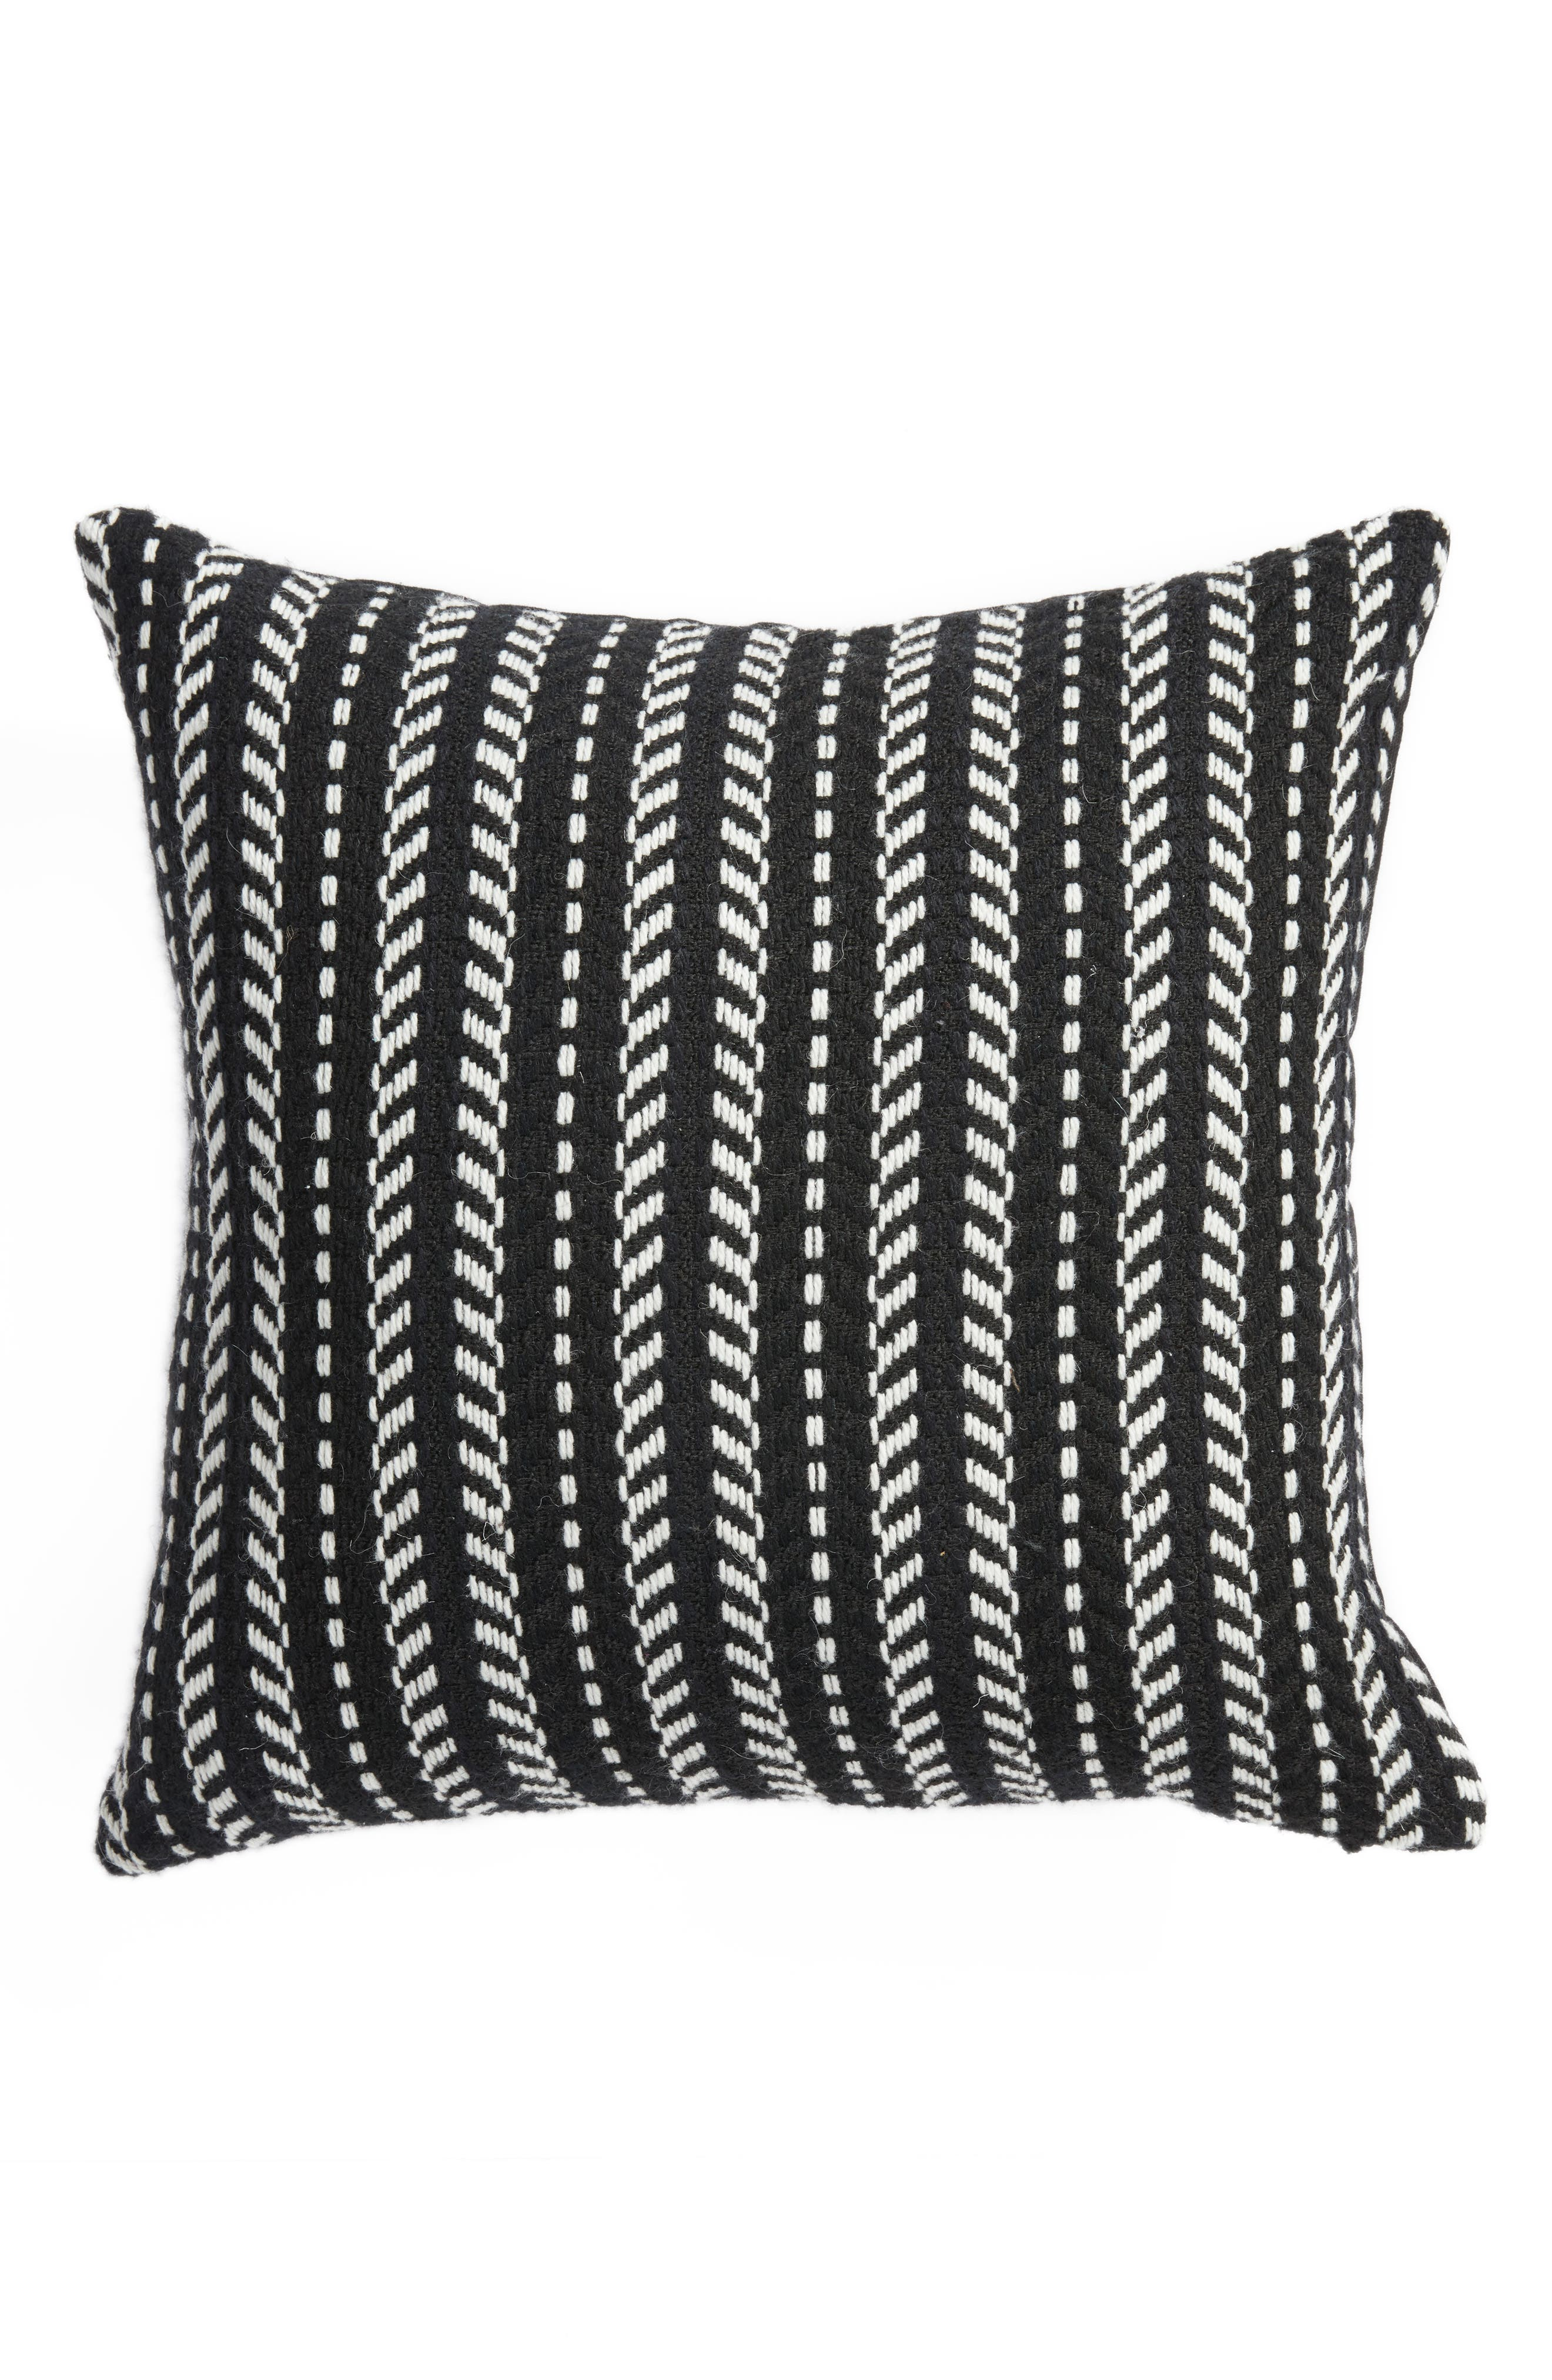 Alternate Image 1 Selected - Levtex Moroccan Woven Pillow